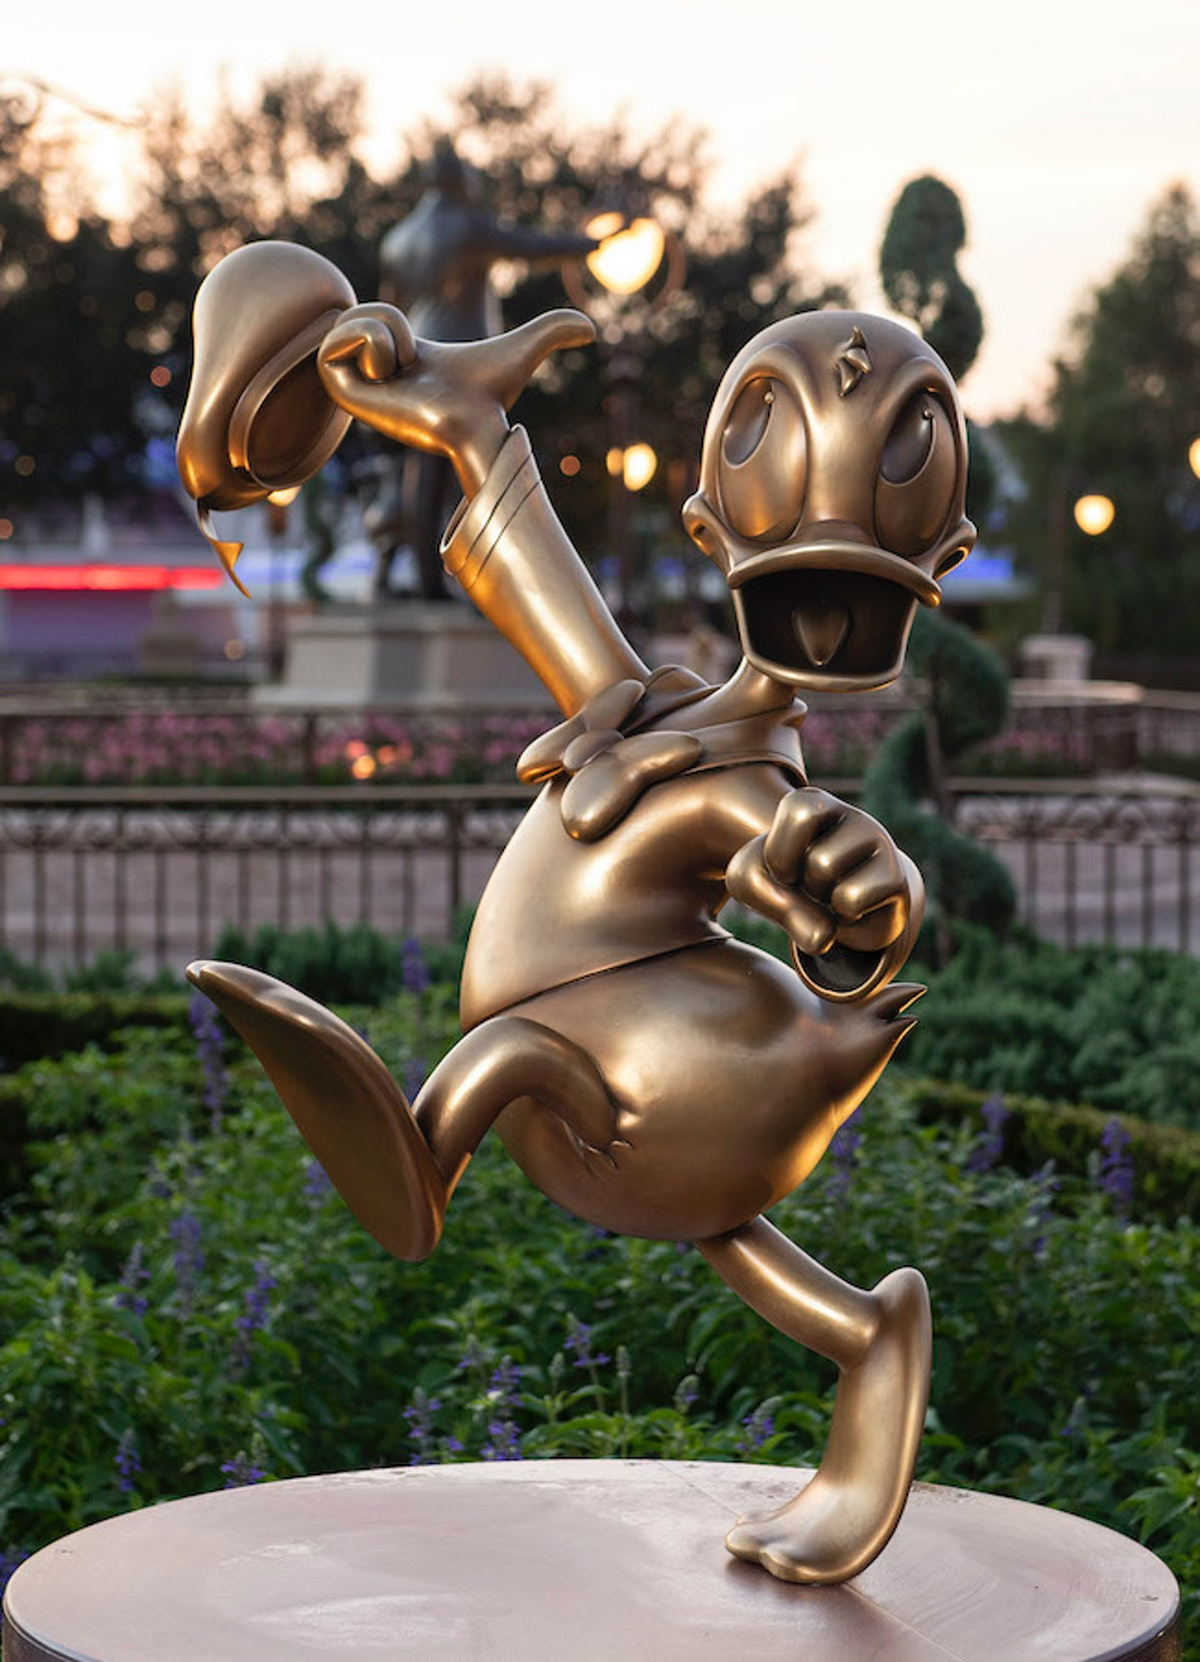 There's a Donald Duck golden statue at Disney World for its 50th anniversary.